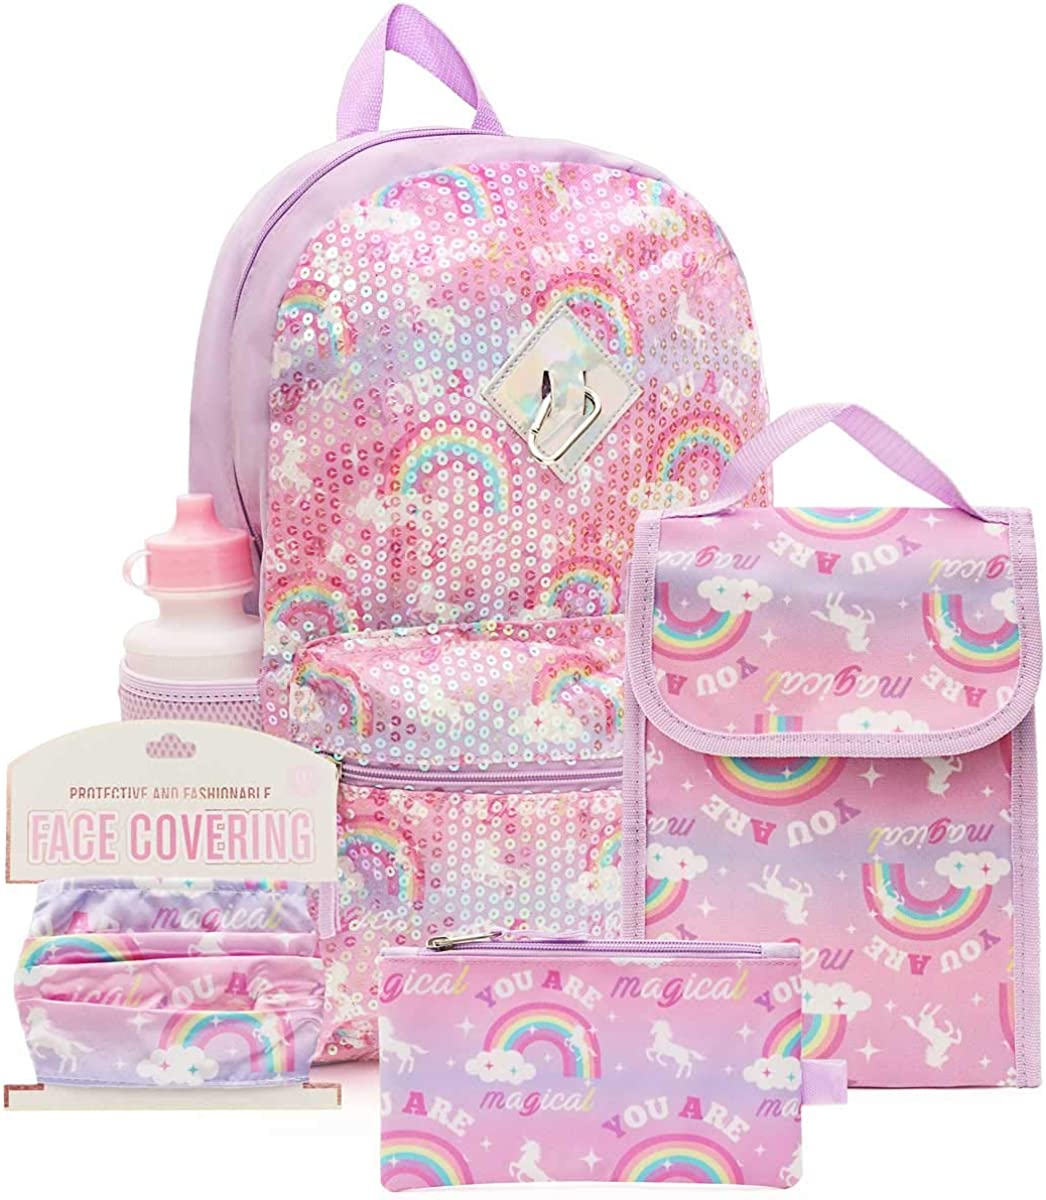 6 Pc. Sequin Girls Backpack Set, 16 inch, w/Washable Cloth Kids Face Mask, Lunch Bag, & Pencil Case (Rainbow Unicorn)